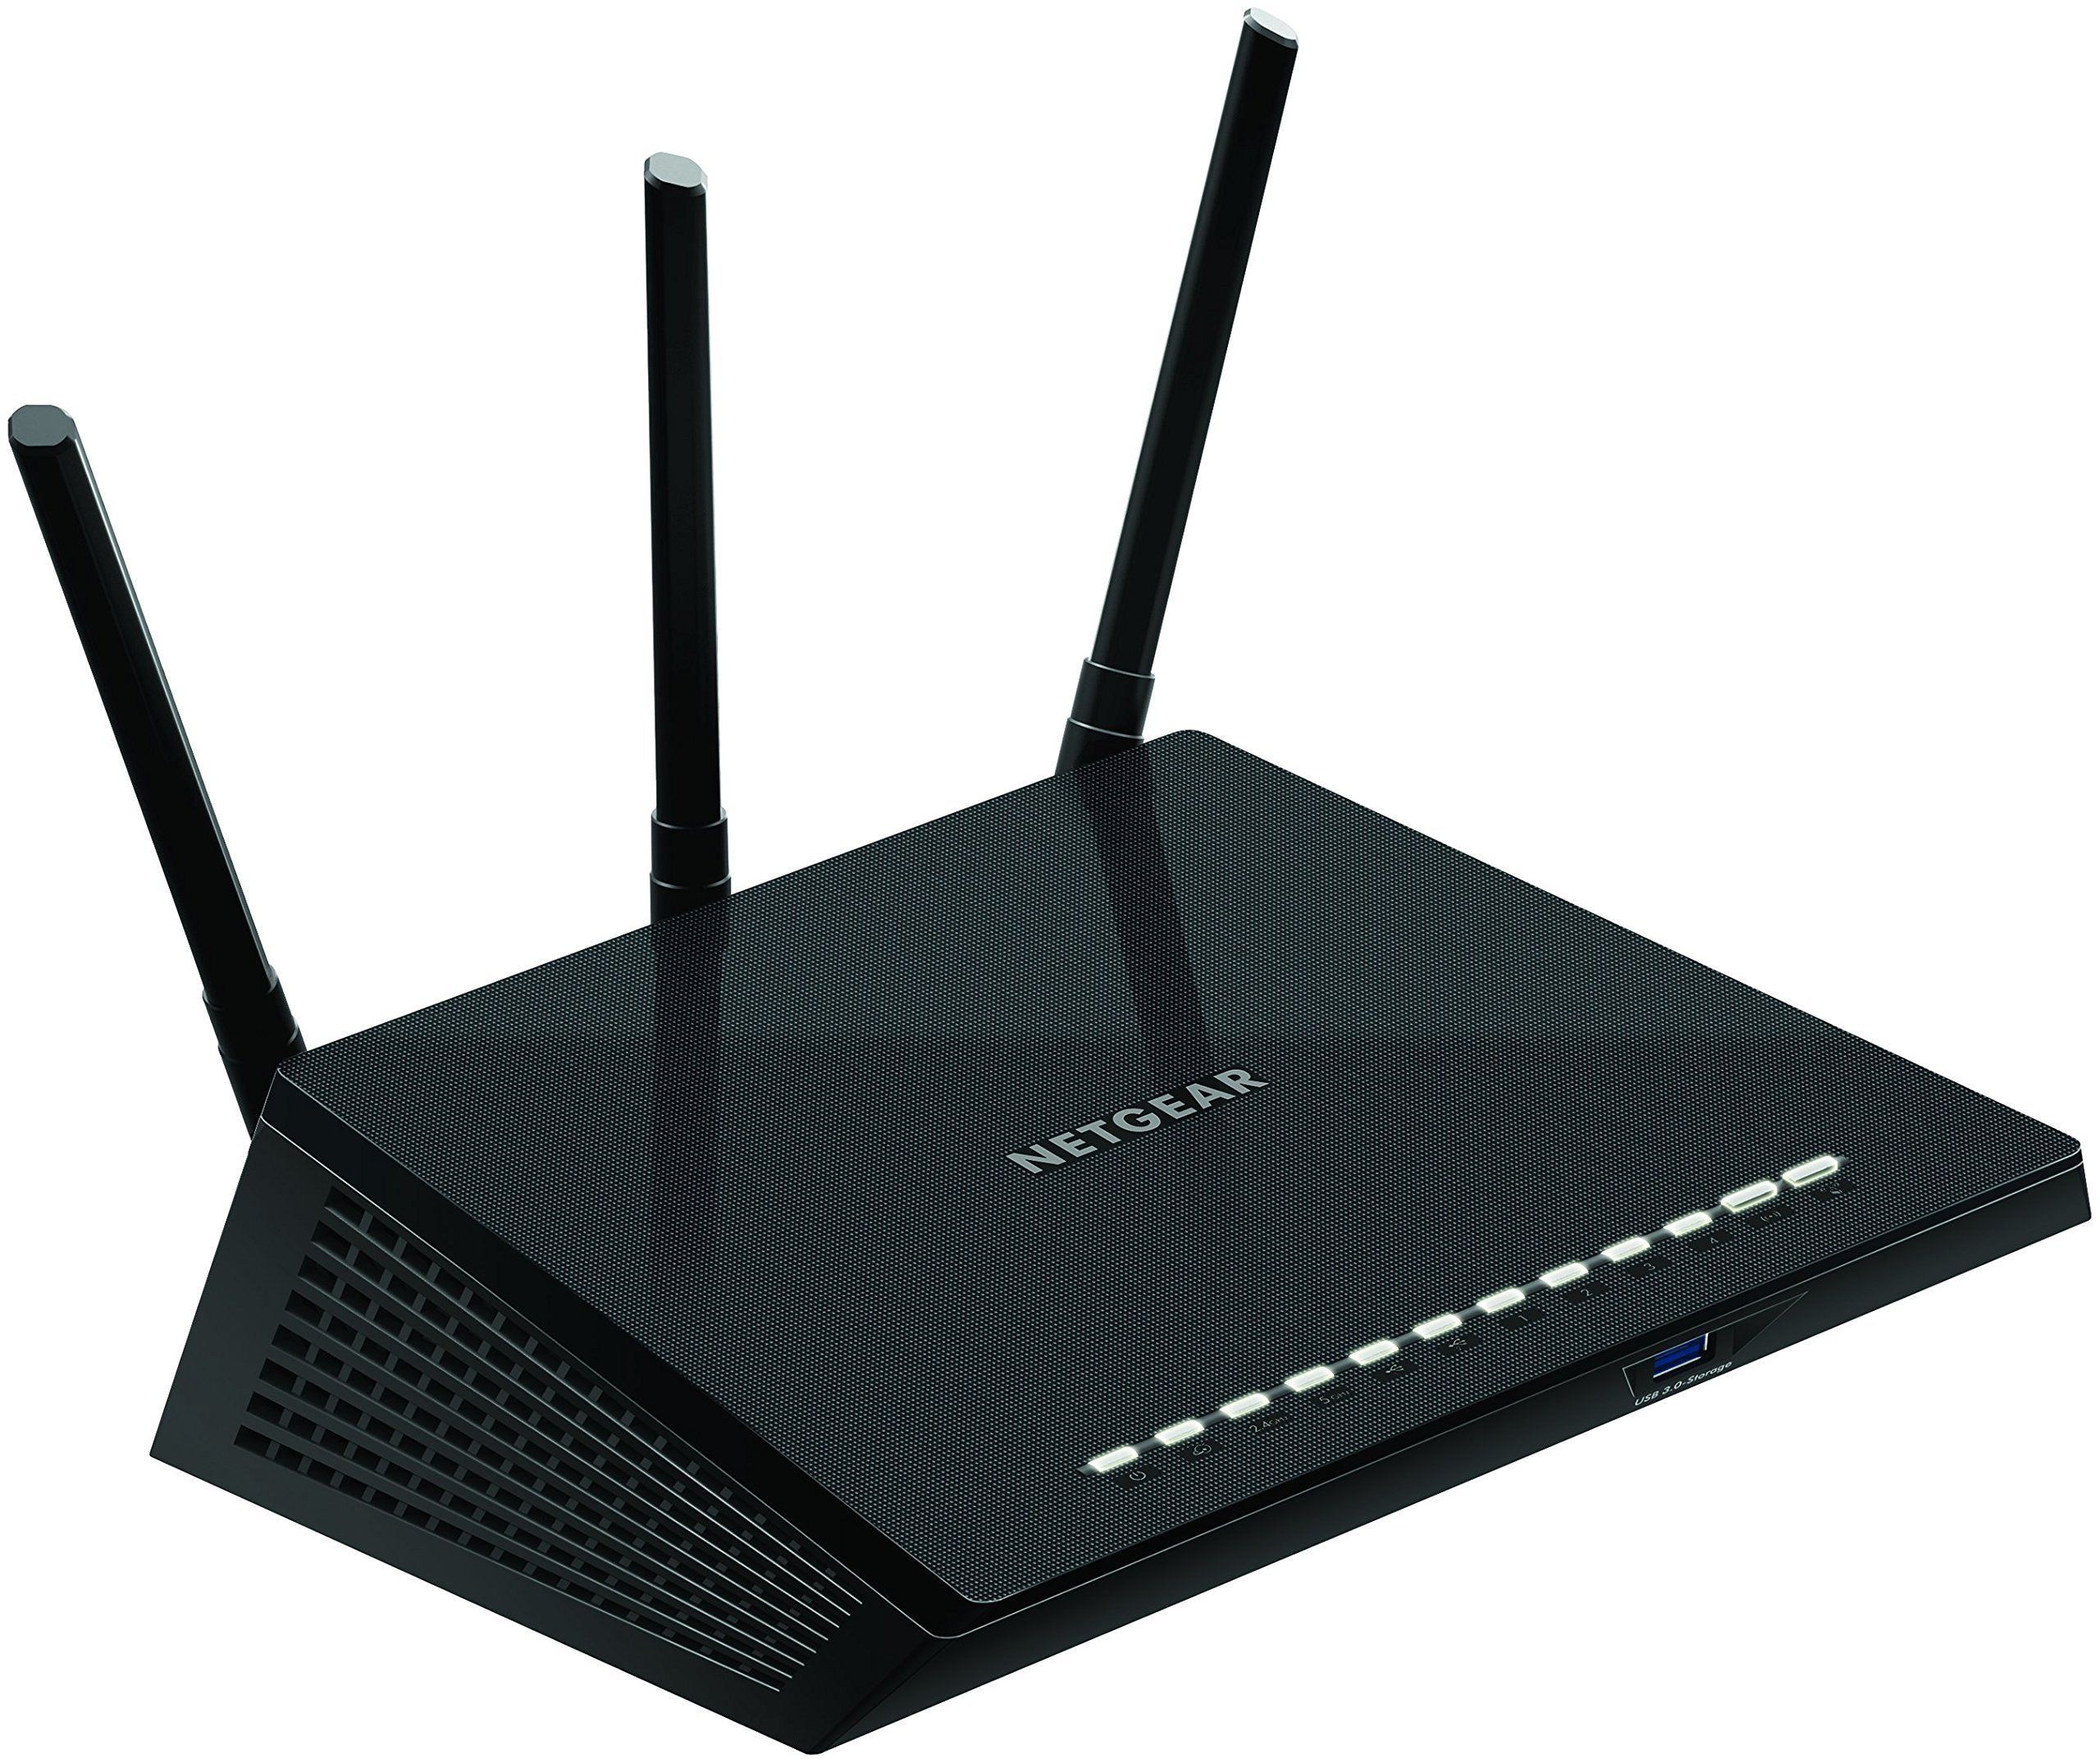 NETGEAR Nighthawk AC1750 Smart Dual Band WiFi Router